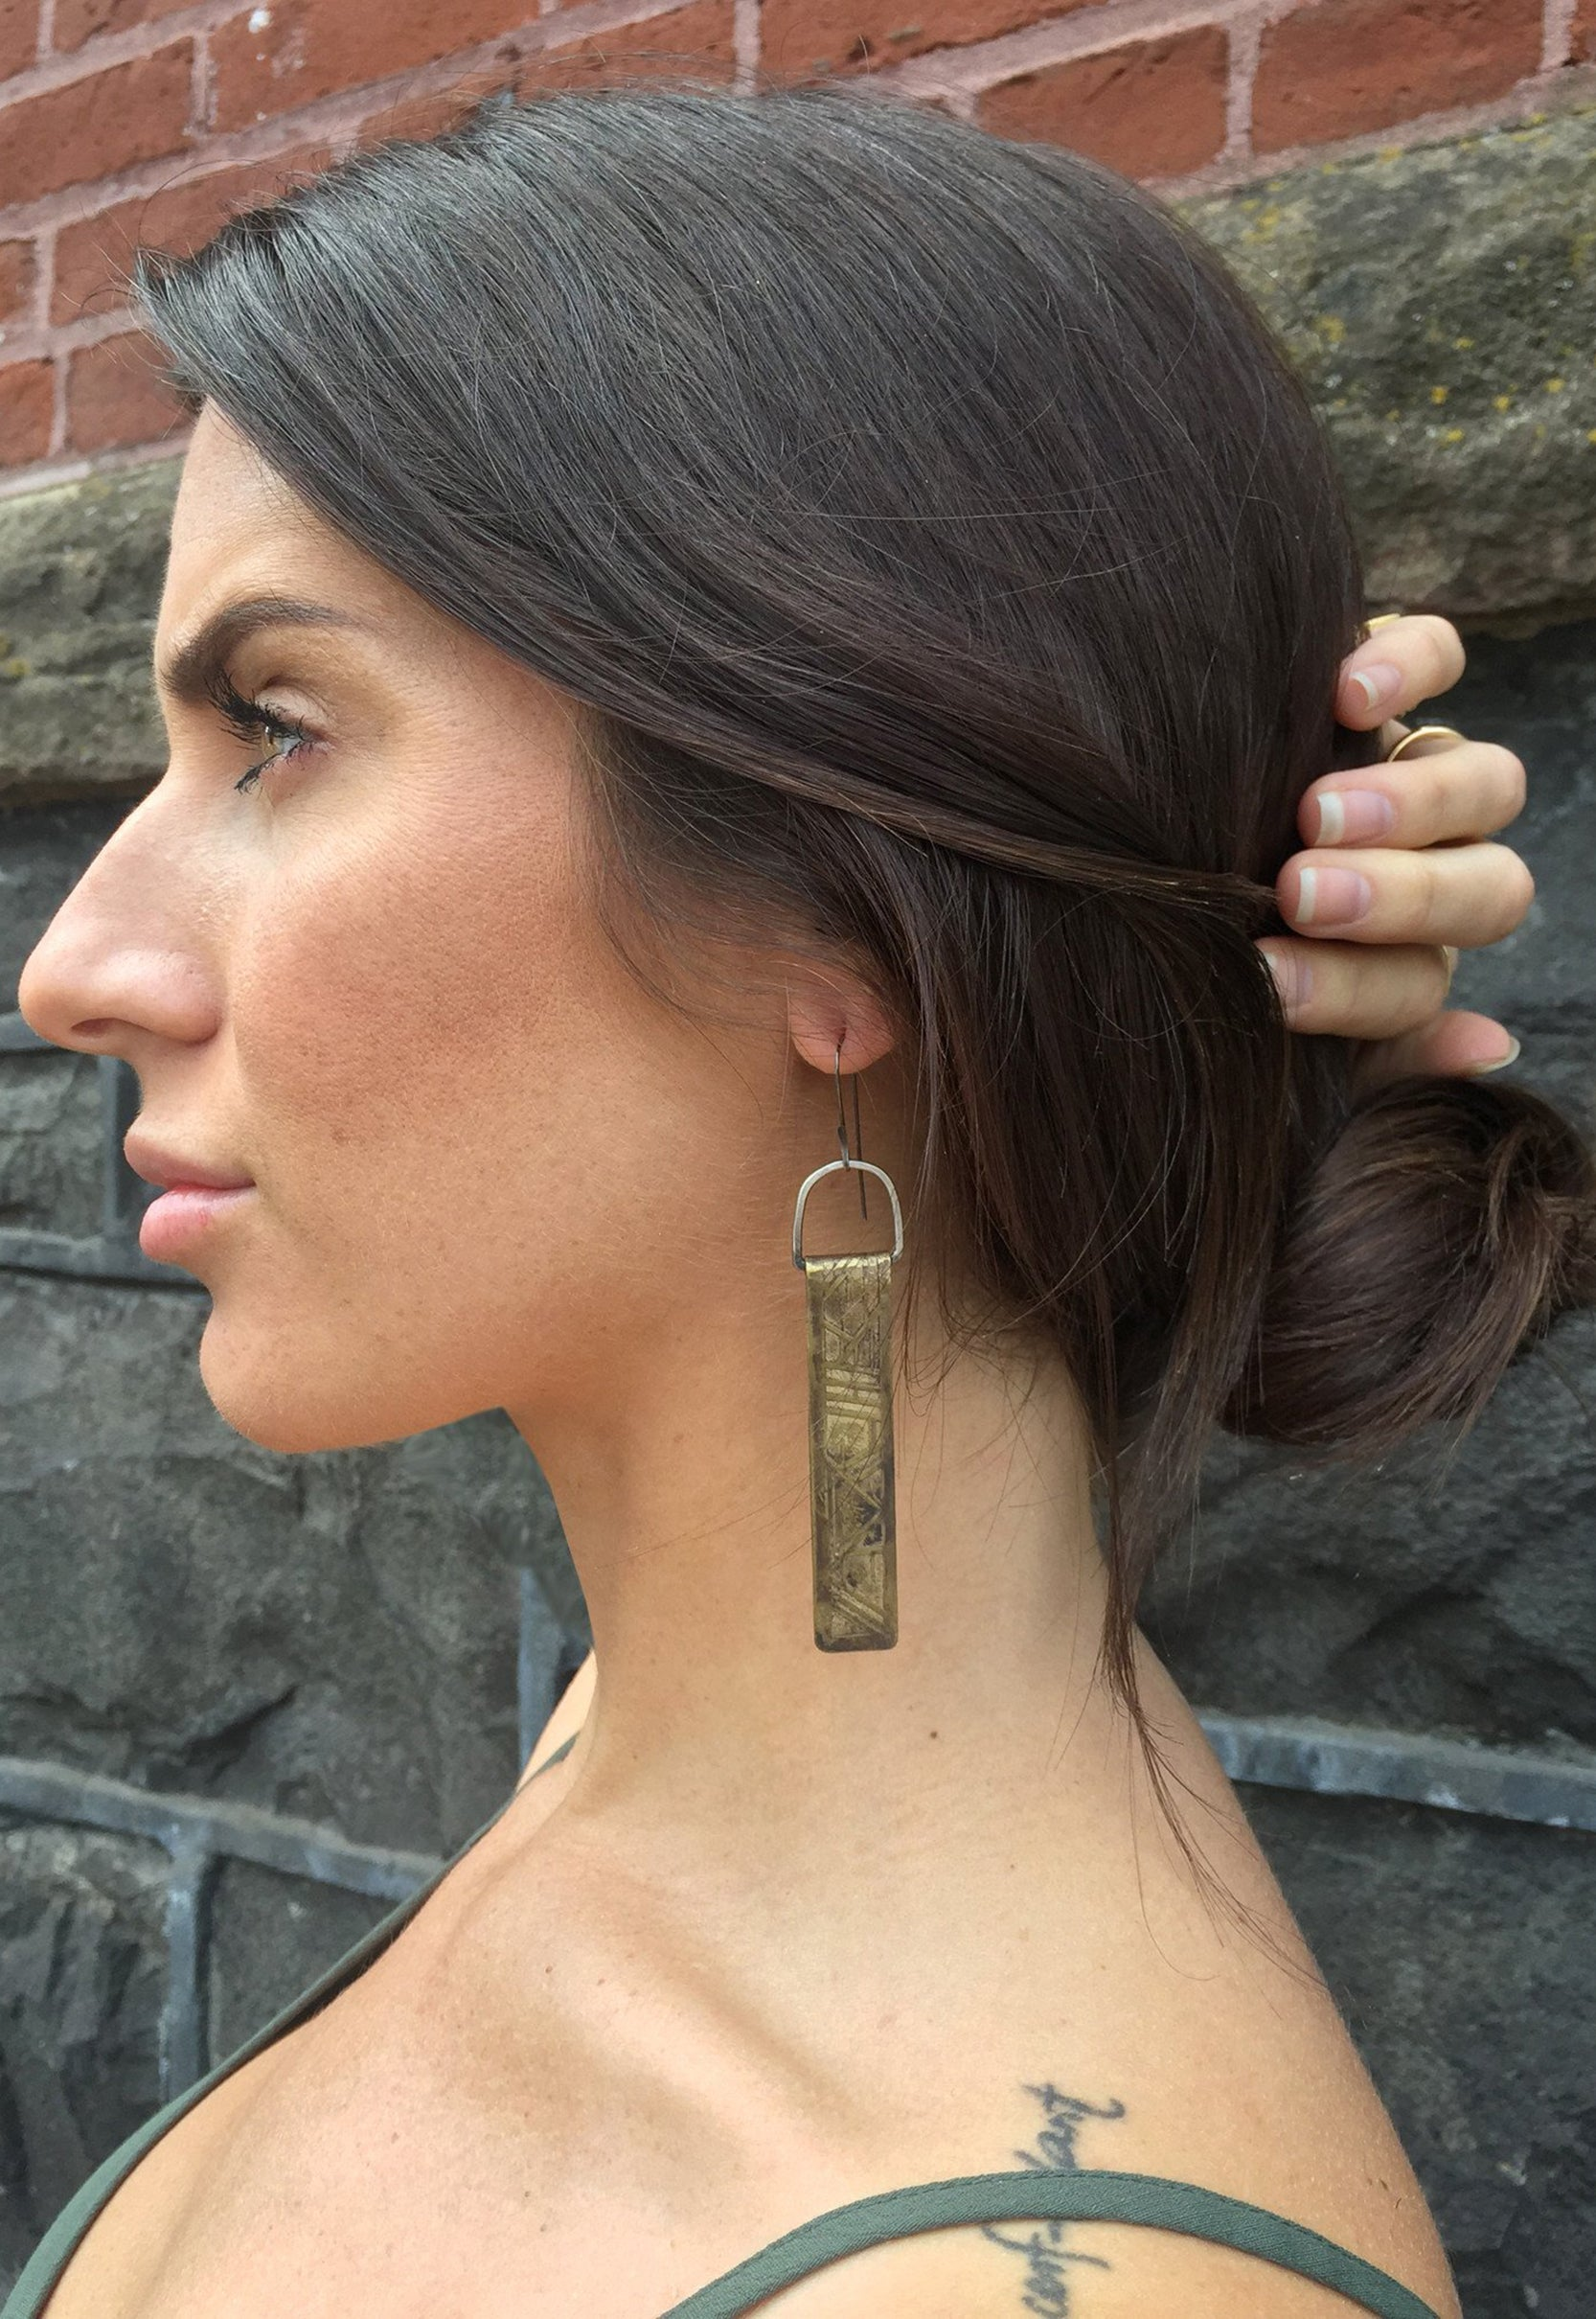 Acid Etched 'Geo Pillar' Earrings